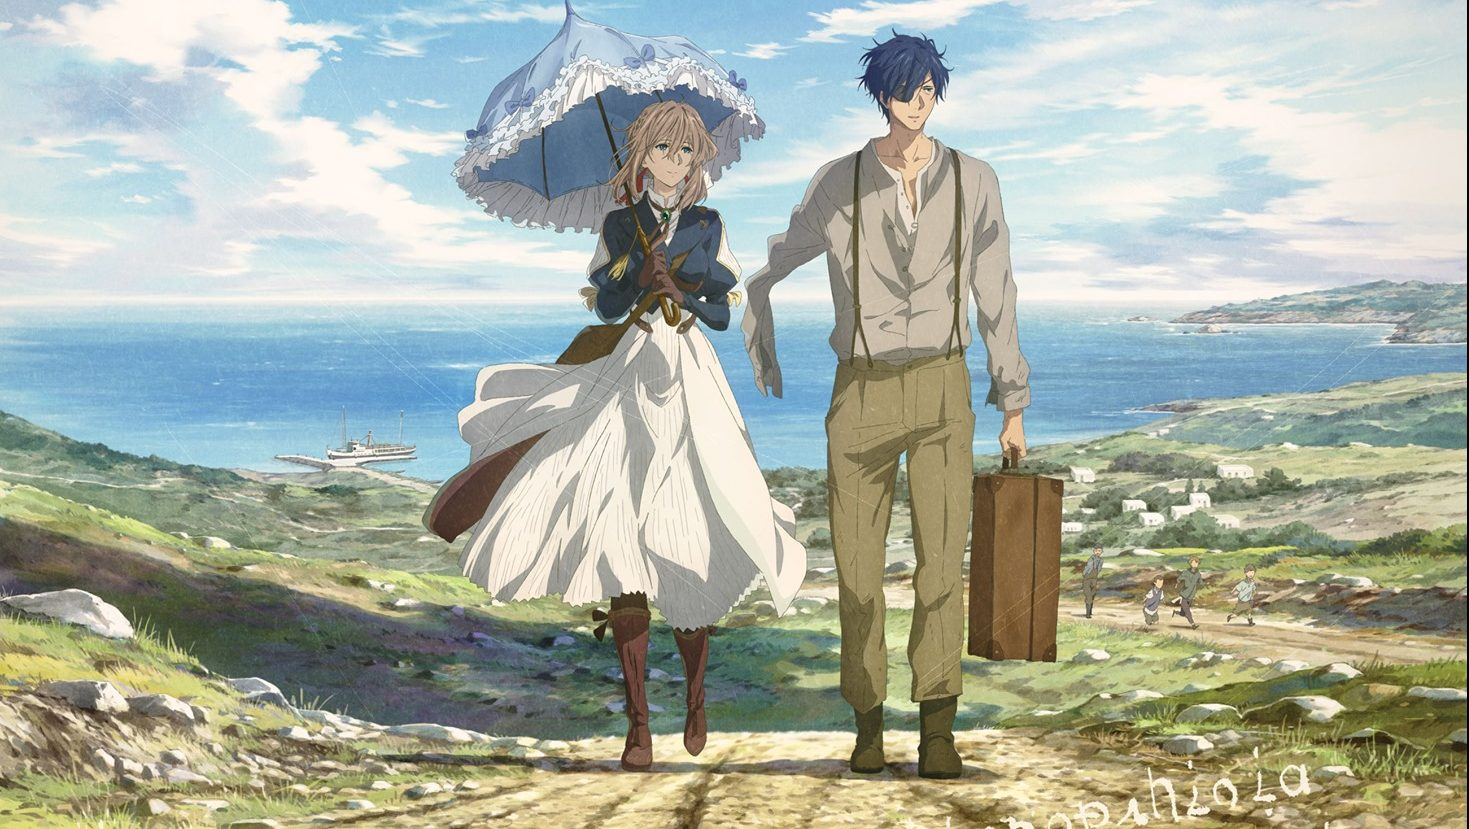 Violet Evergarden Movie fan screenings in Malaysia set for March 27-28